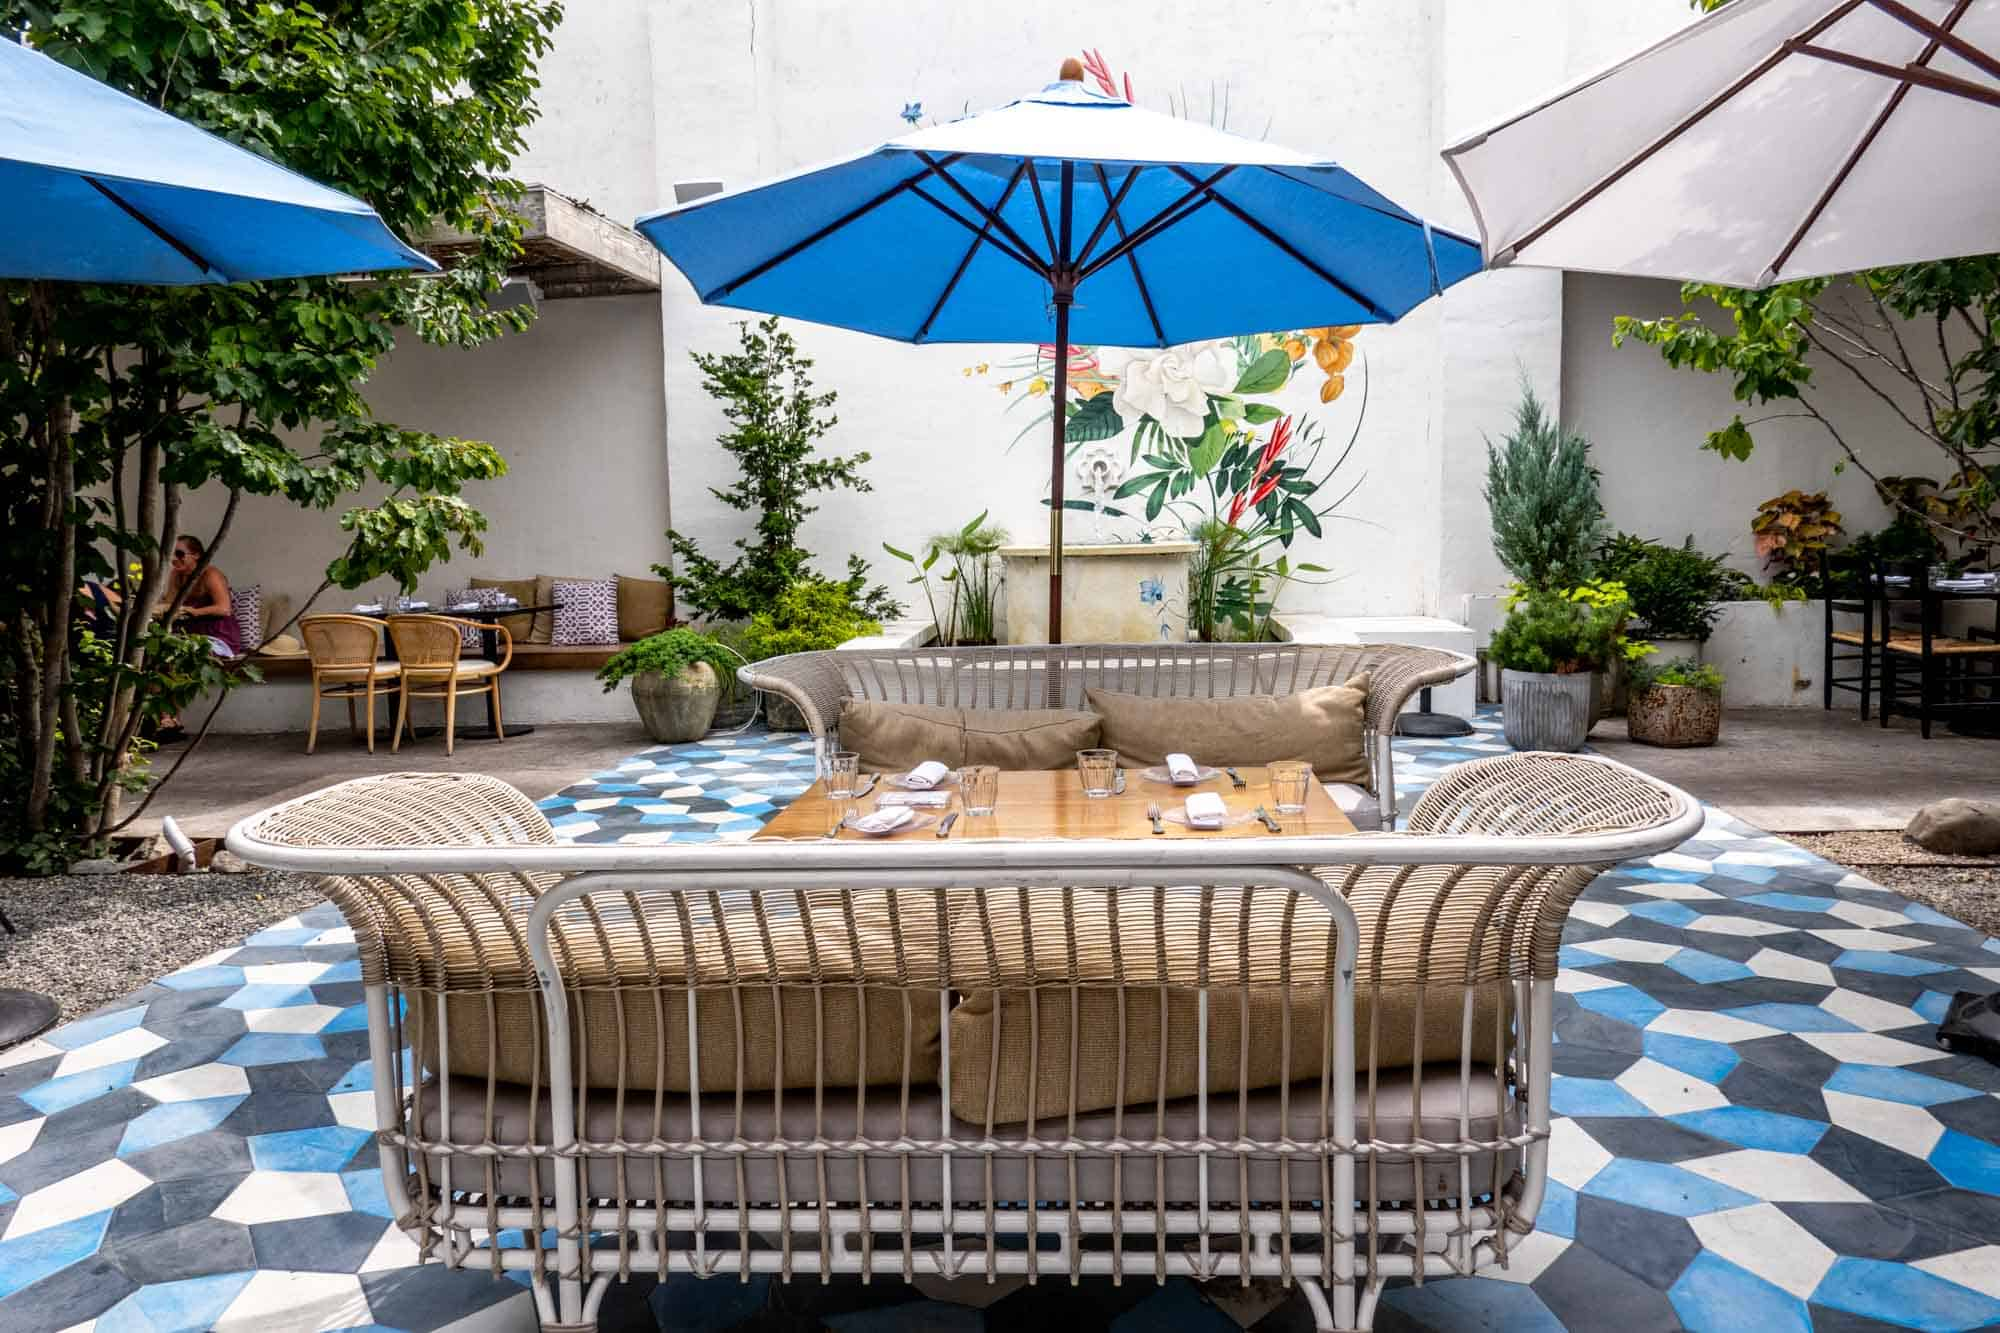 Table and outdoor furniture in a courtyard